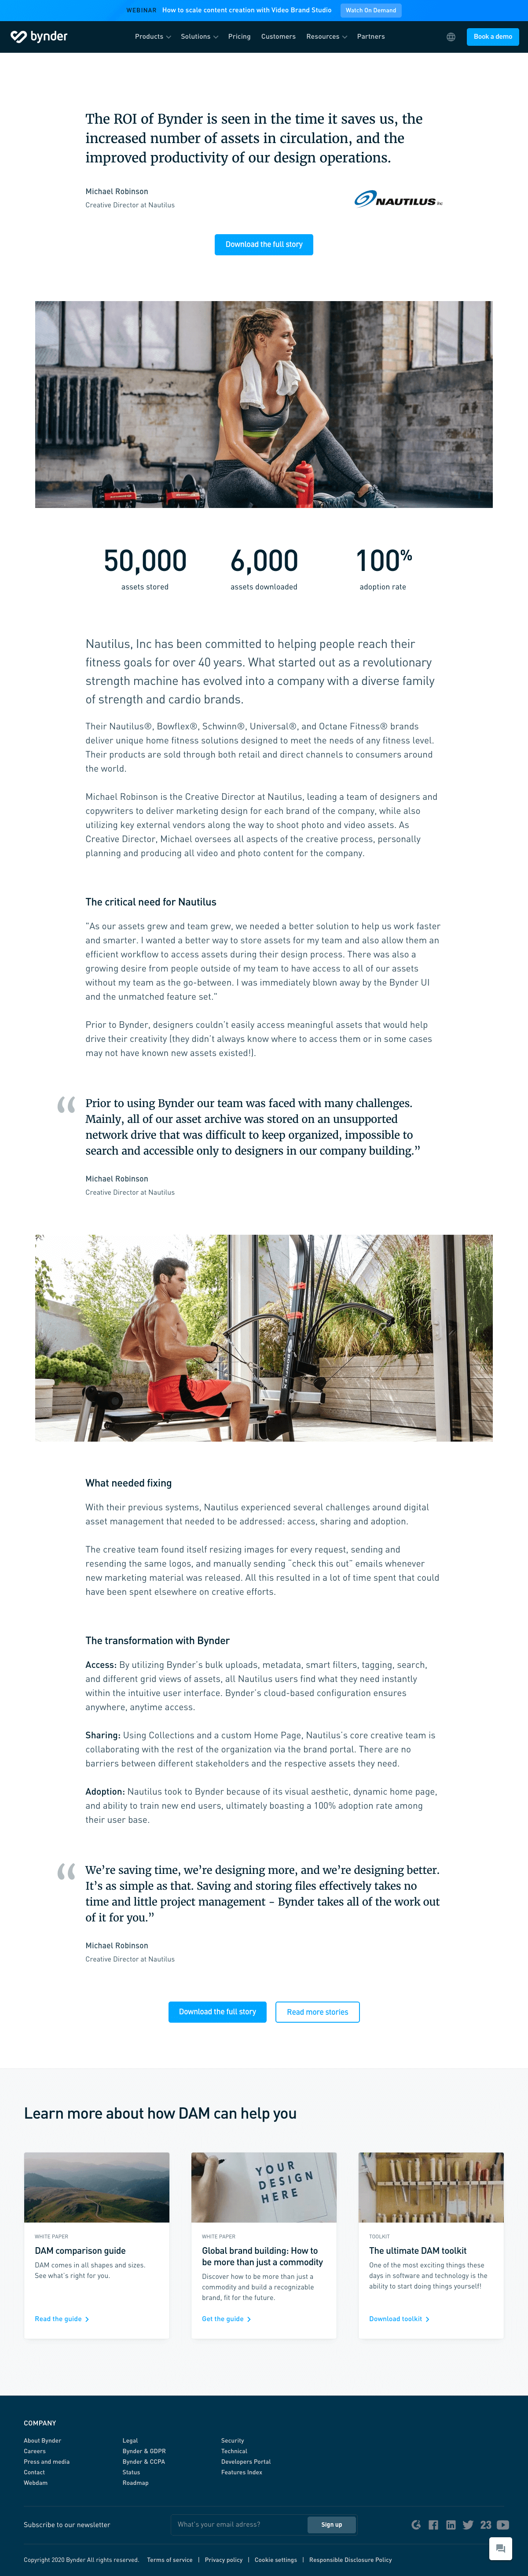 Bynder – Customers page 2